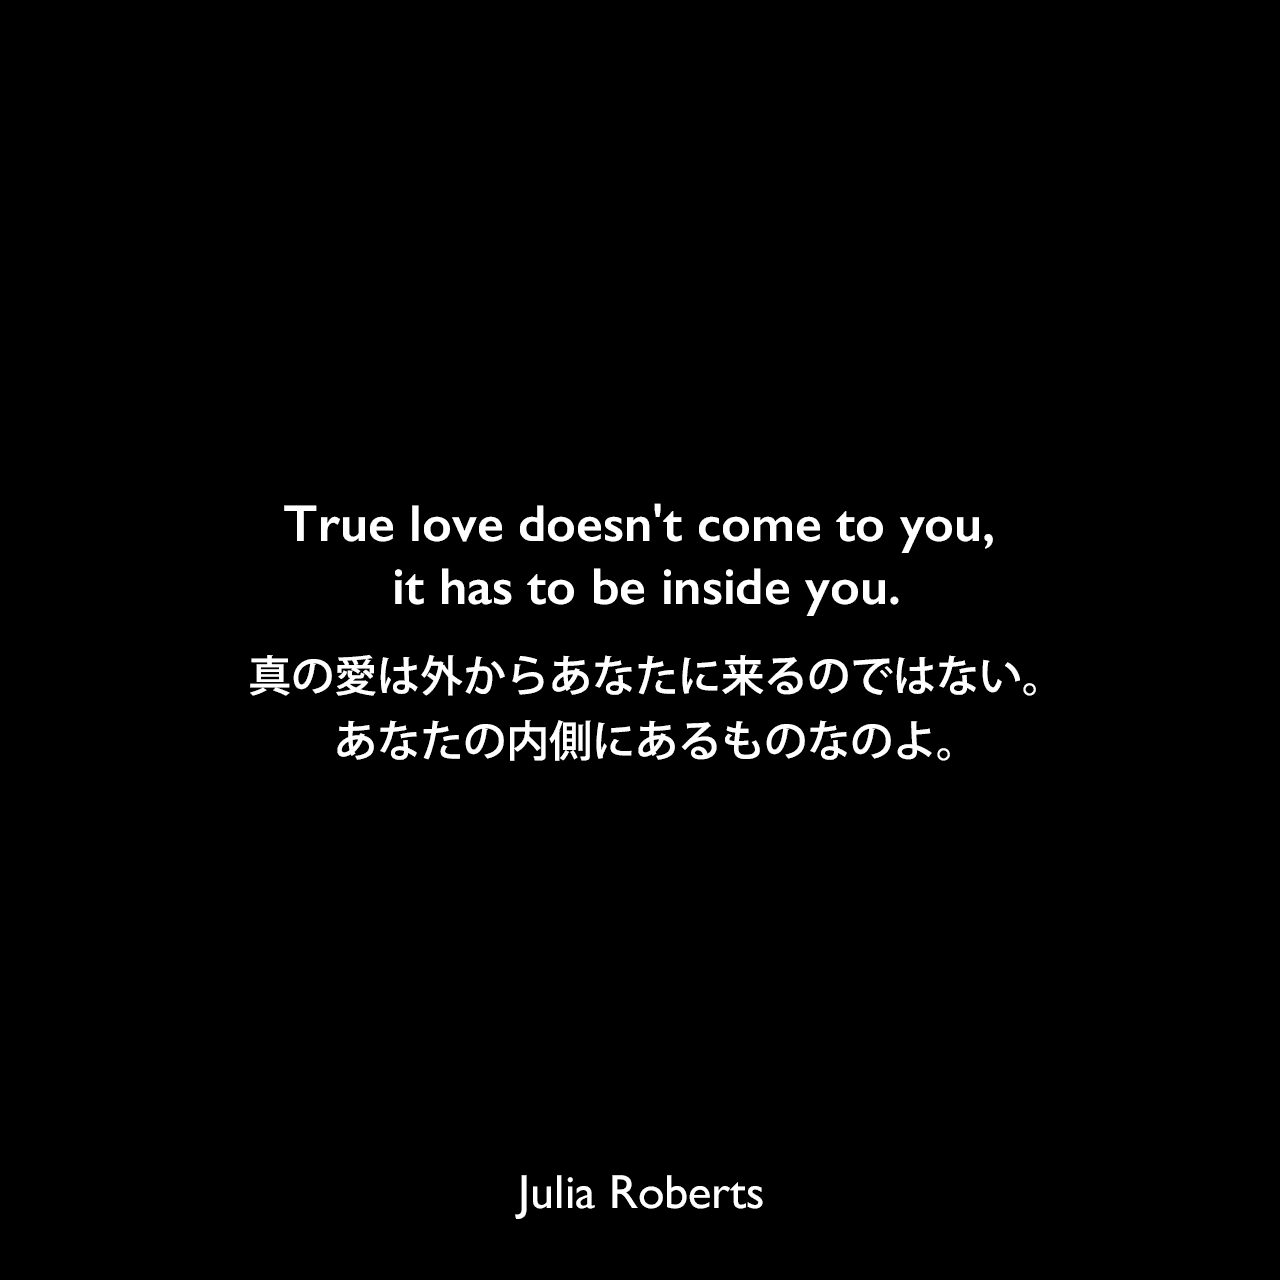 True love doesn't come to you, it has to be inside you.真の愛は外からあなたに来るのではない。あなたの内側にあるものなのよ。Julia Roberts